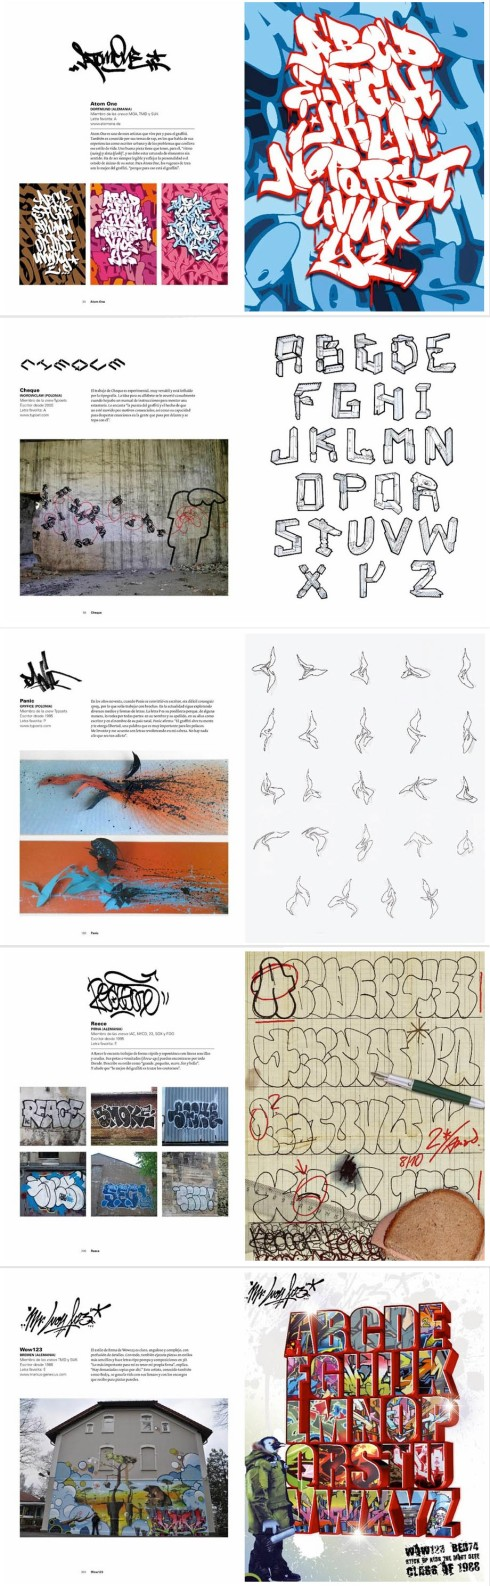 graffiti alphabet, type, street art, art book, collabcubed